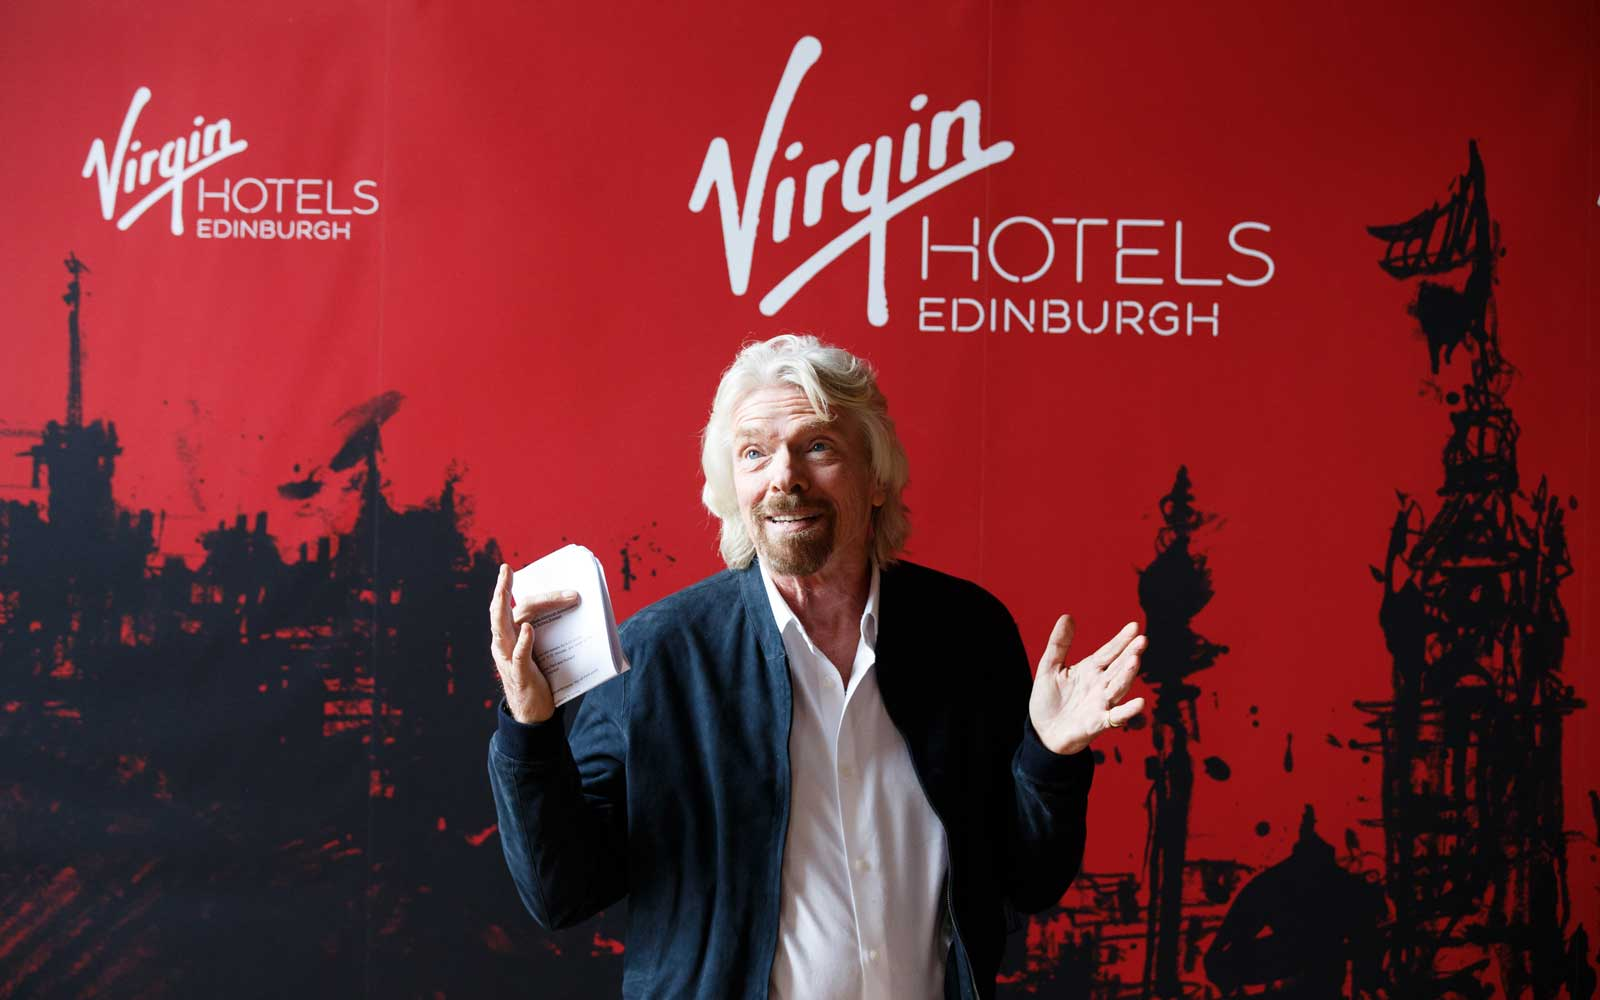 Richard Branson Is Opening the First Virgin Hotel in Europe in a City That Has a 'Very Special Place' in His Heart